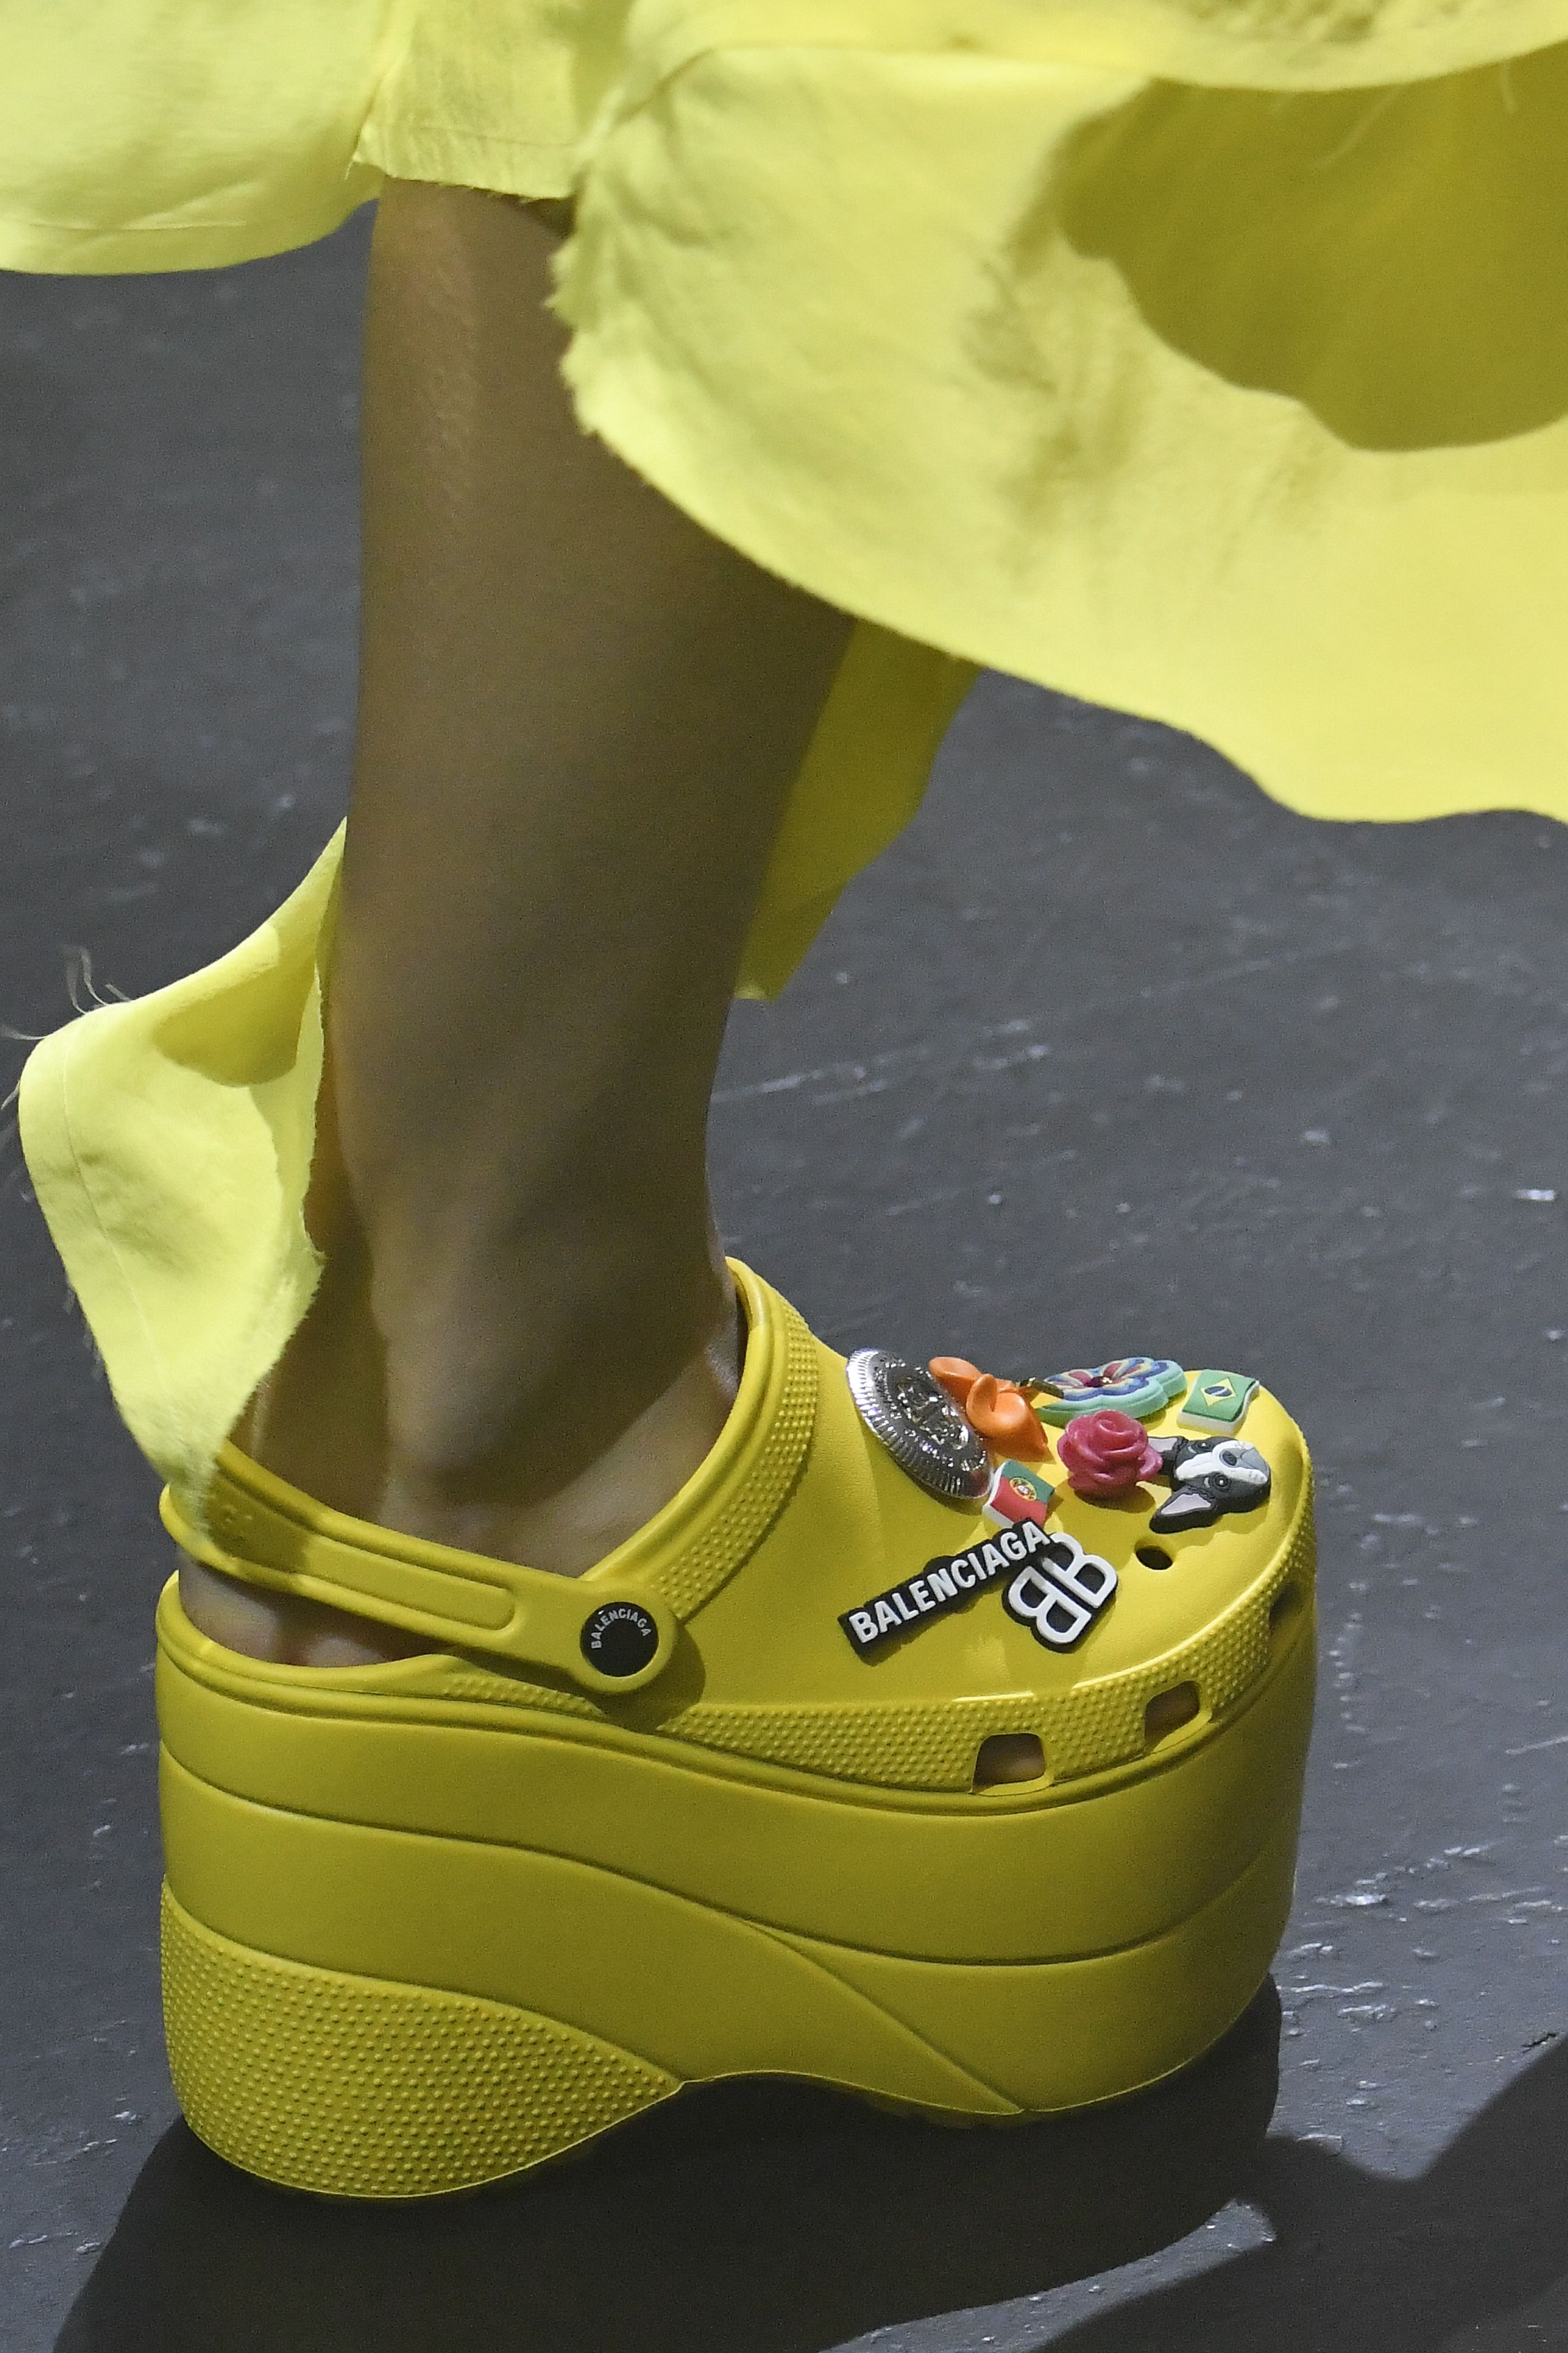 88f926828880 Balenciaga s Crocs are the latest in designer Demna Gvasalia s campaign to  blur the lines between luxury fashion and the clothing we insist belongs  outside ...